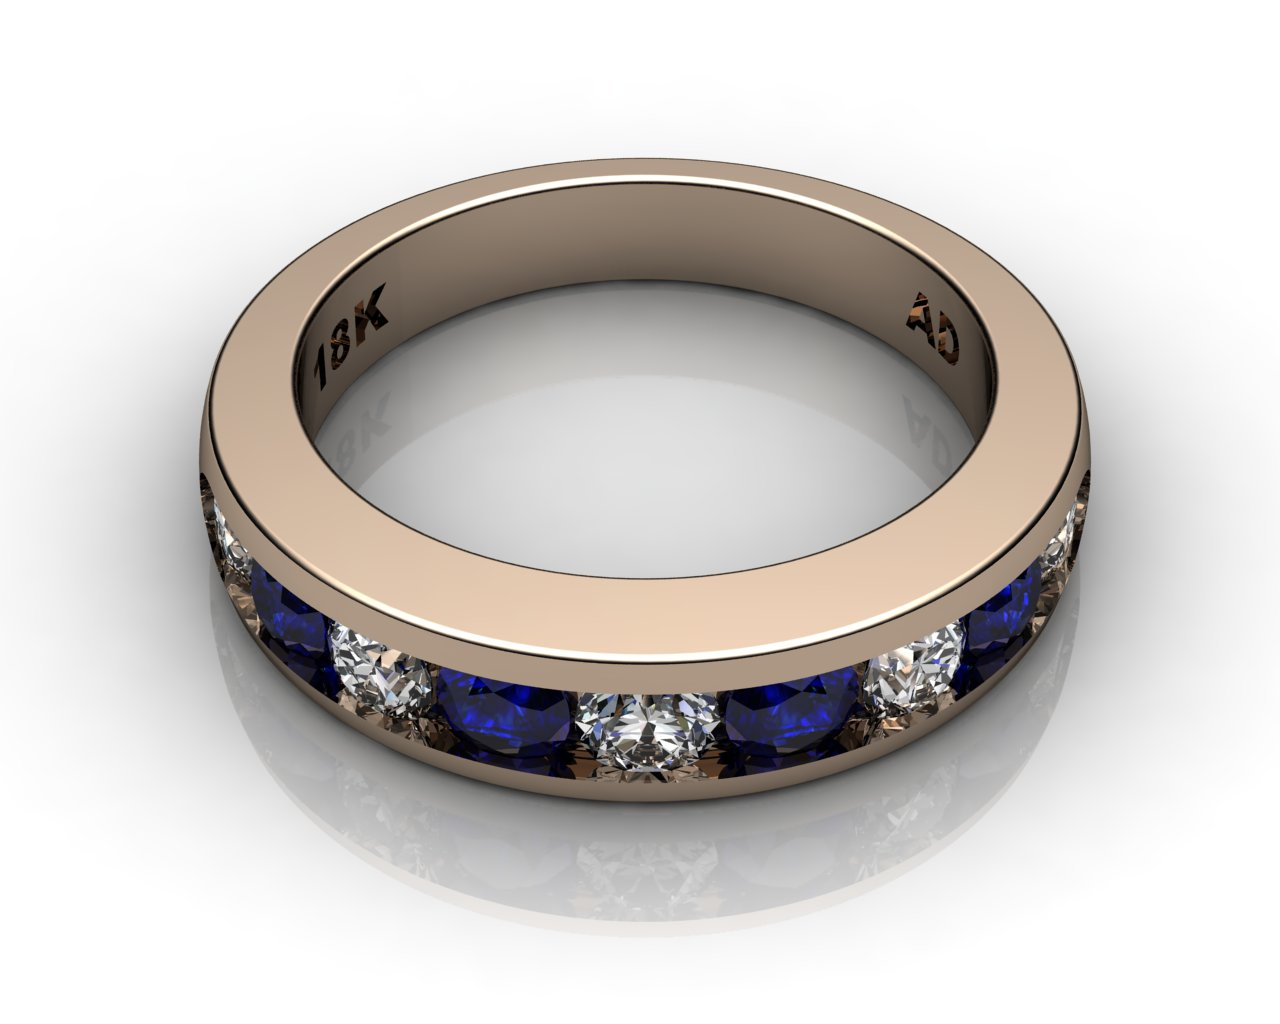 Wedding Bands Ladies Channel 9 Stone 10 TCW Diamonds And Blue Sapphire 61g 18kt Rose Gold